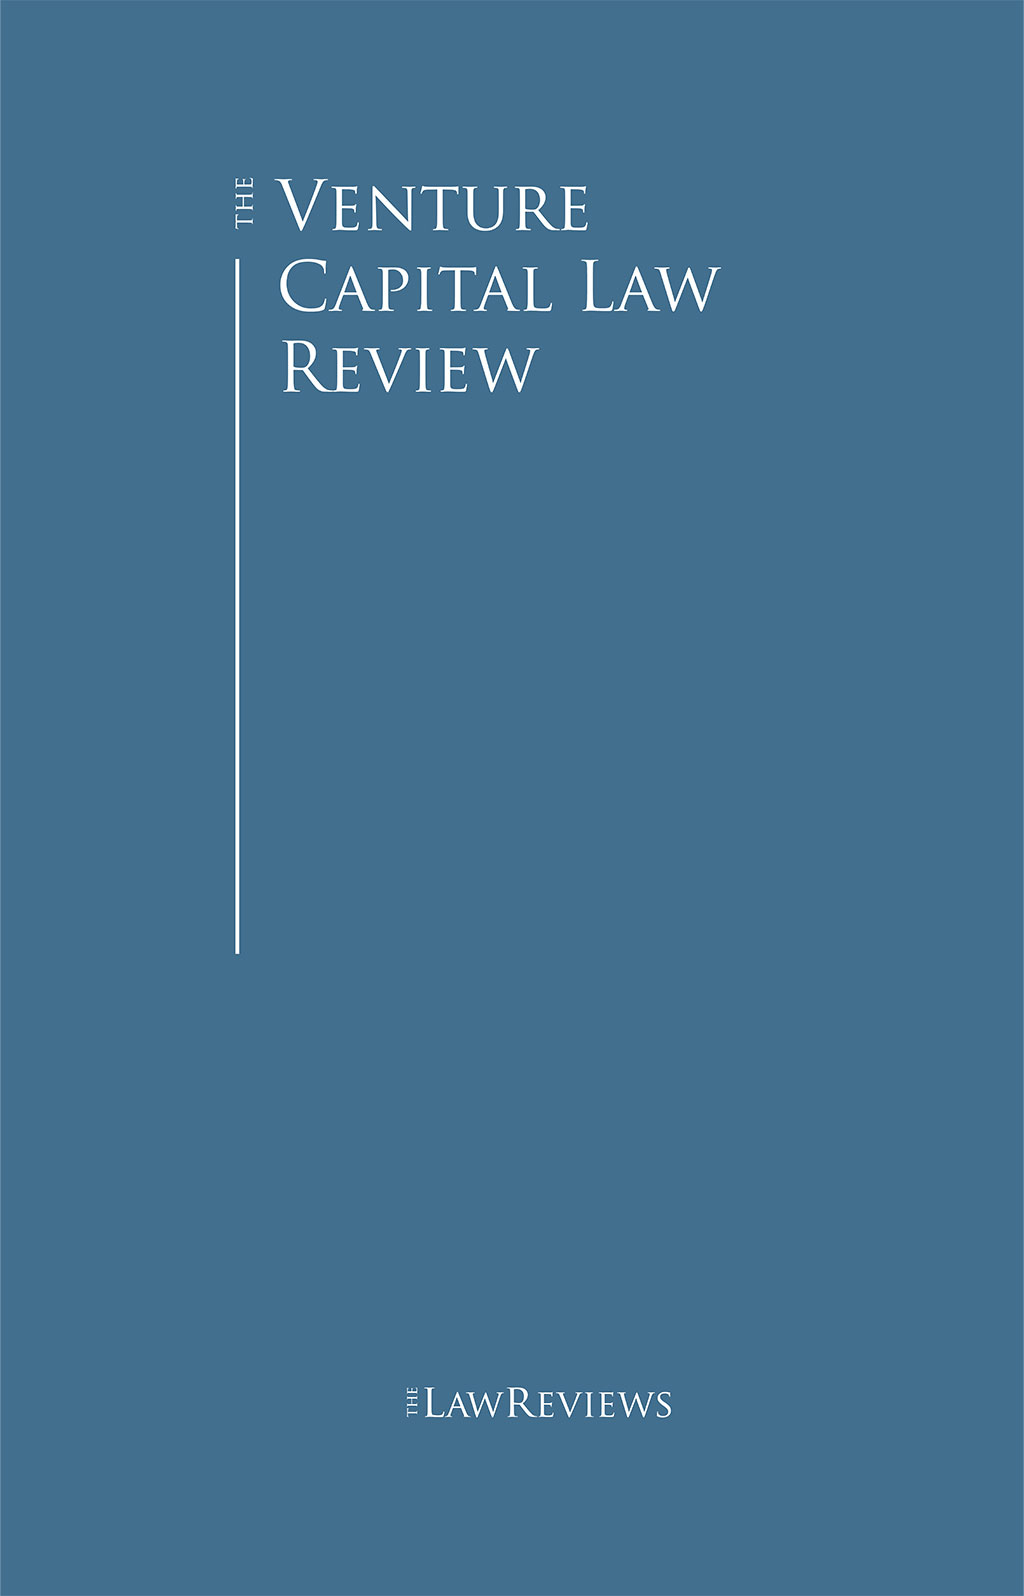 The Venture Capital Law Review